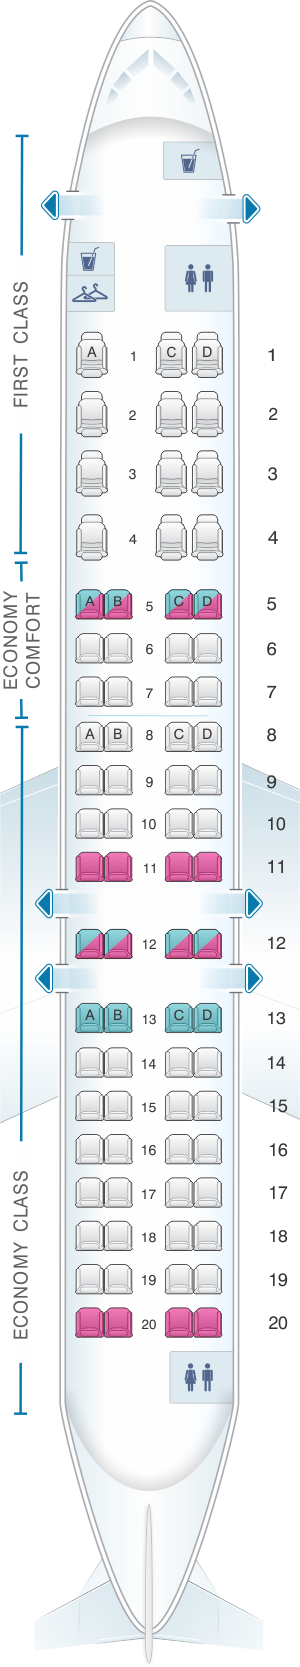 Seat map for Bombardier CRJ 900